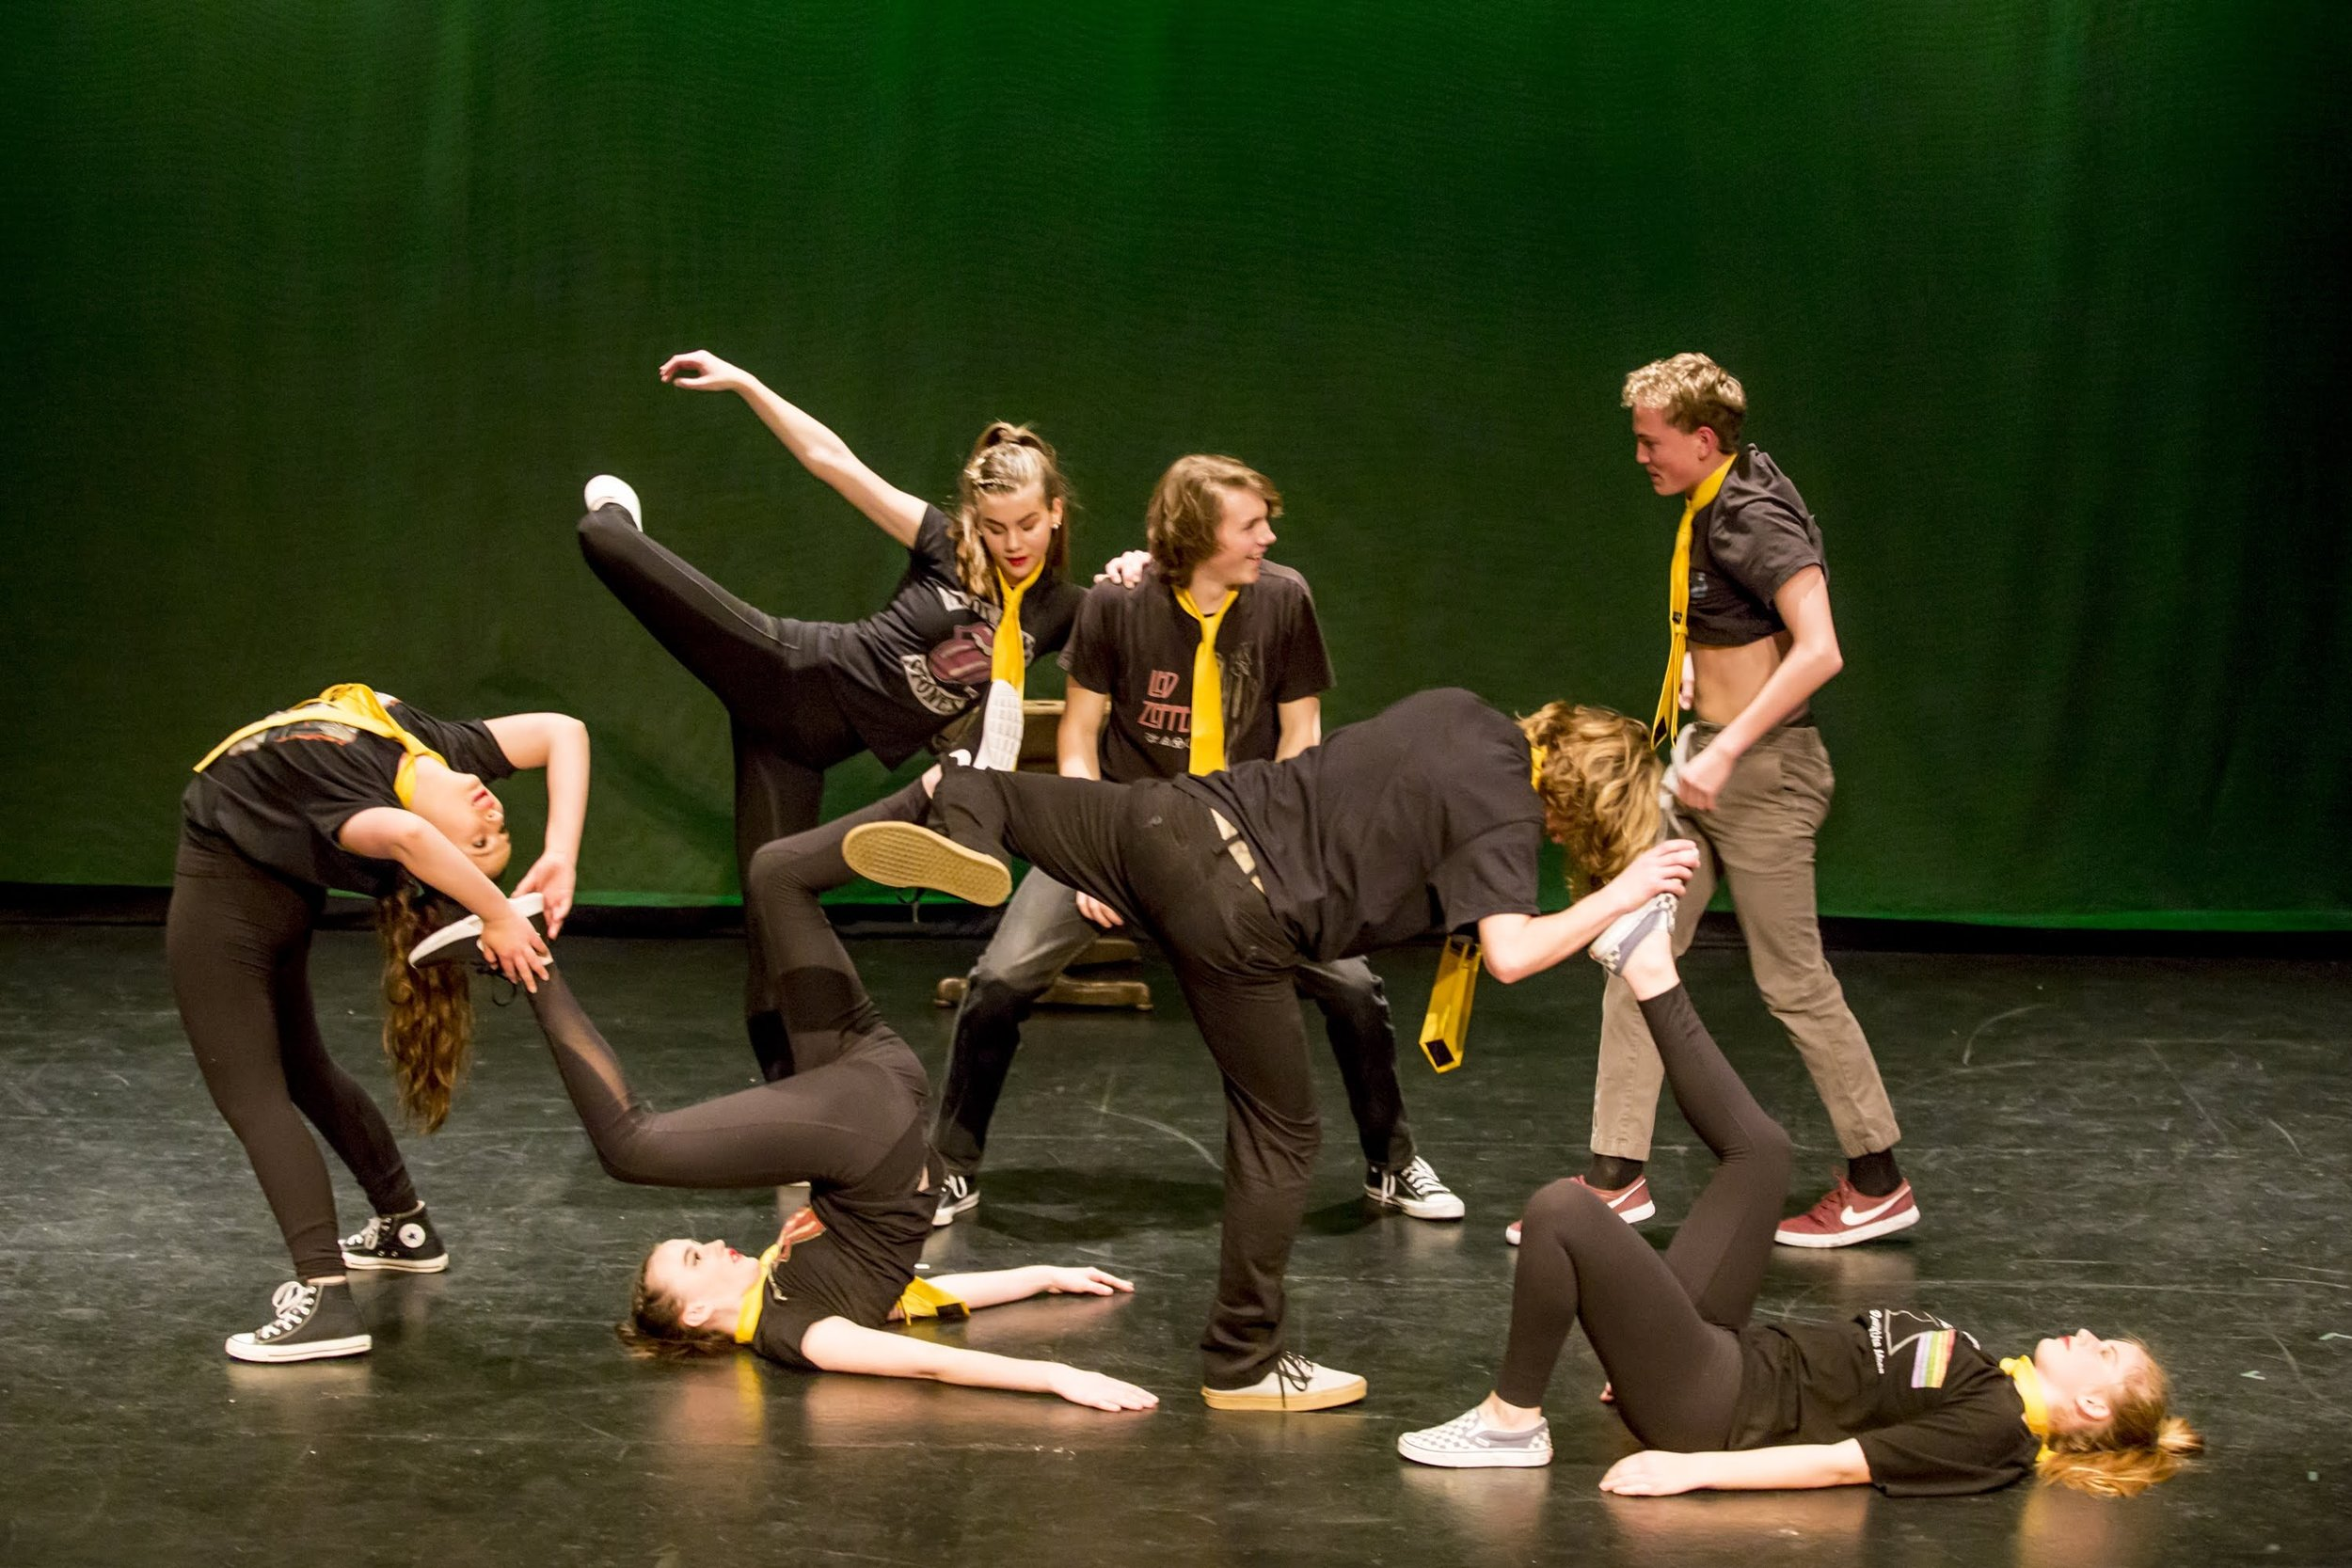 Crested Butte School of Dance - 5:00-5:45pm: Opening procession